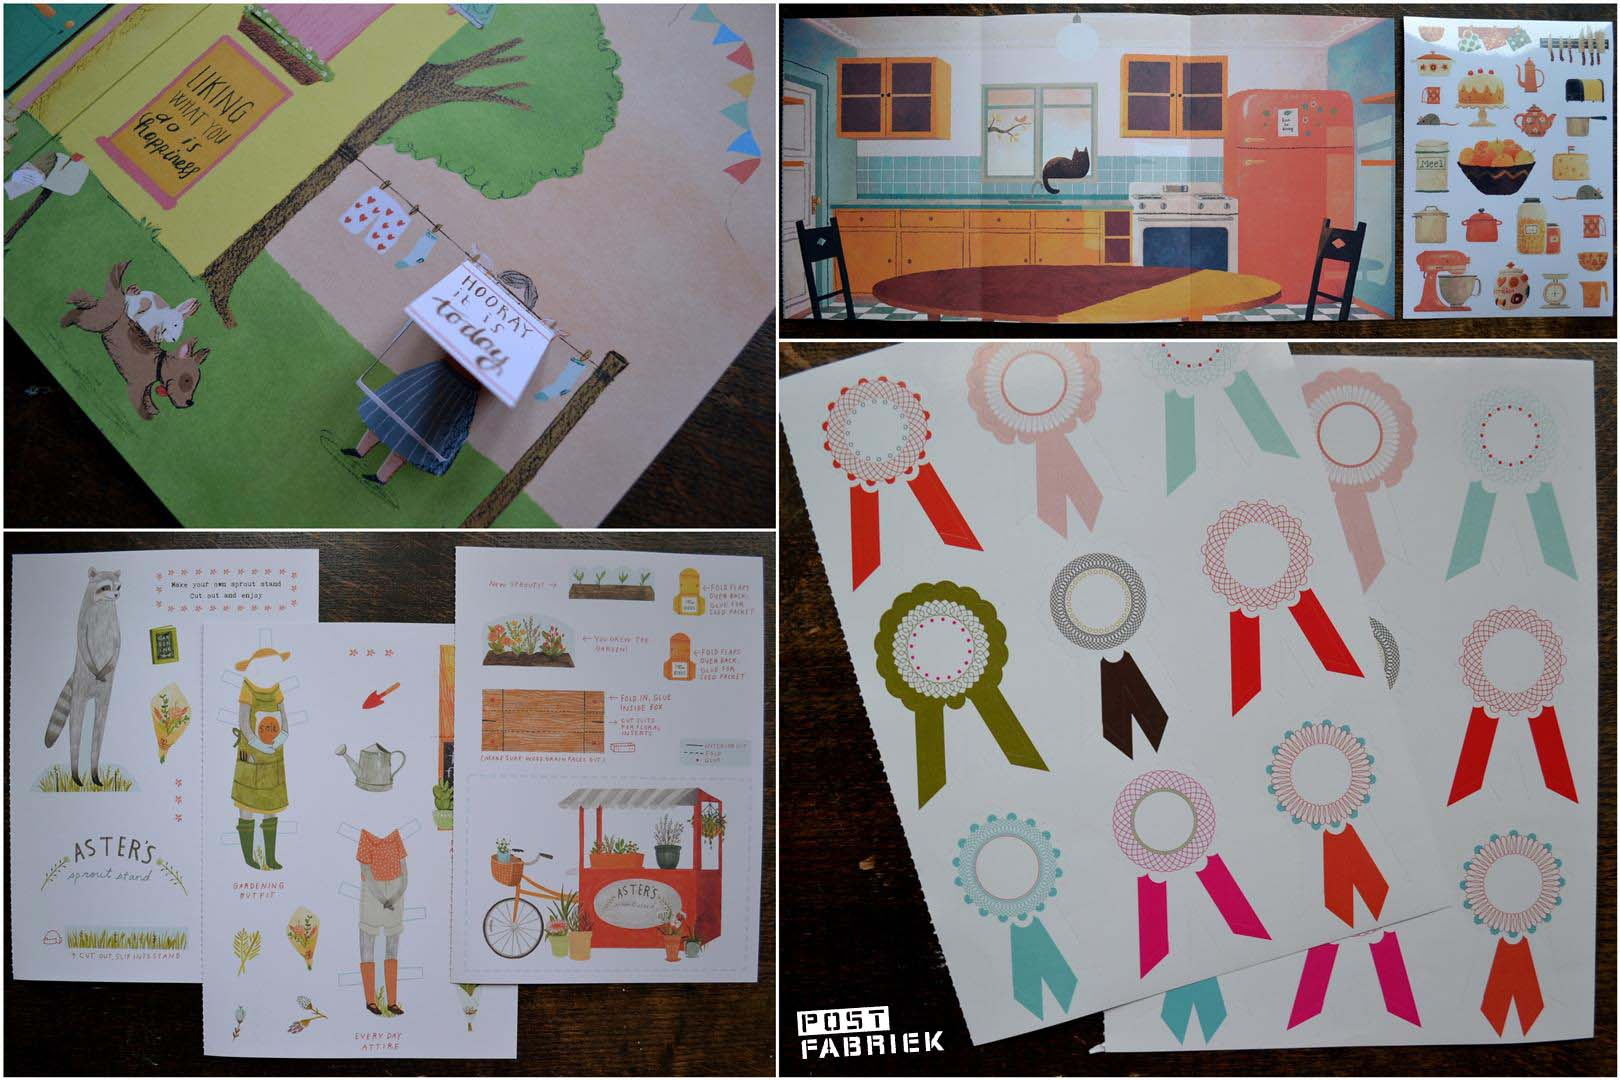 pop-up posters, stickers, aankleedpoppetjes en een plakposter